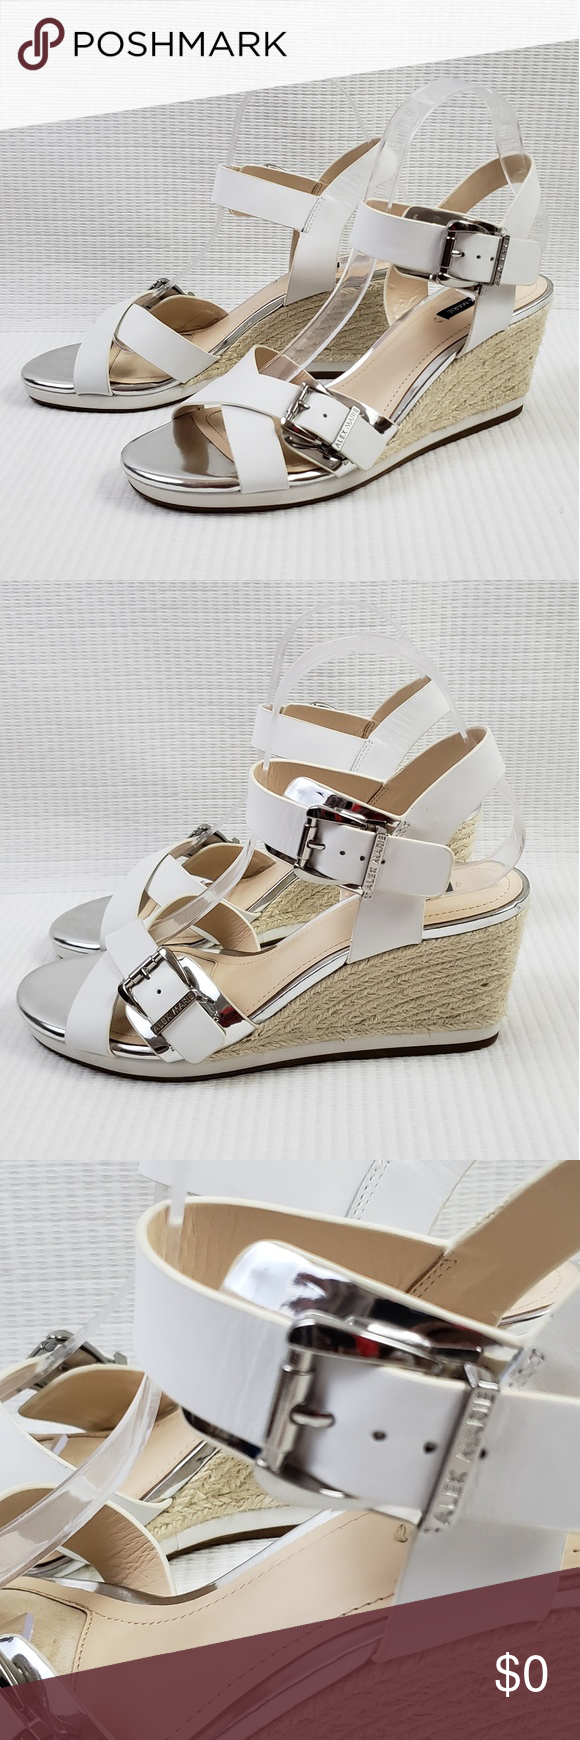 54153bb97f Alex Marie ankle strap wedges sandals shoes sz 9M Preowned, gently used wedge  shoes,